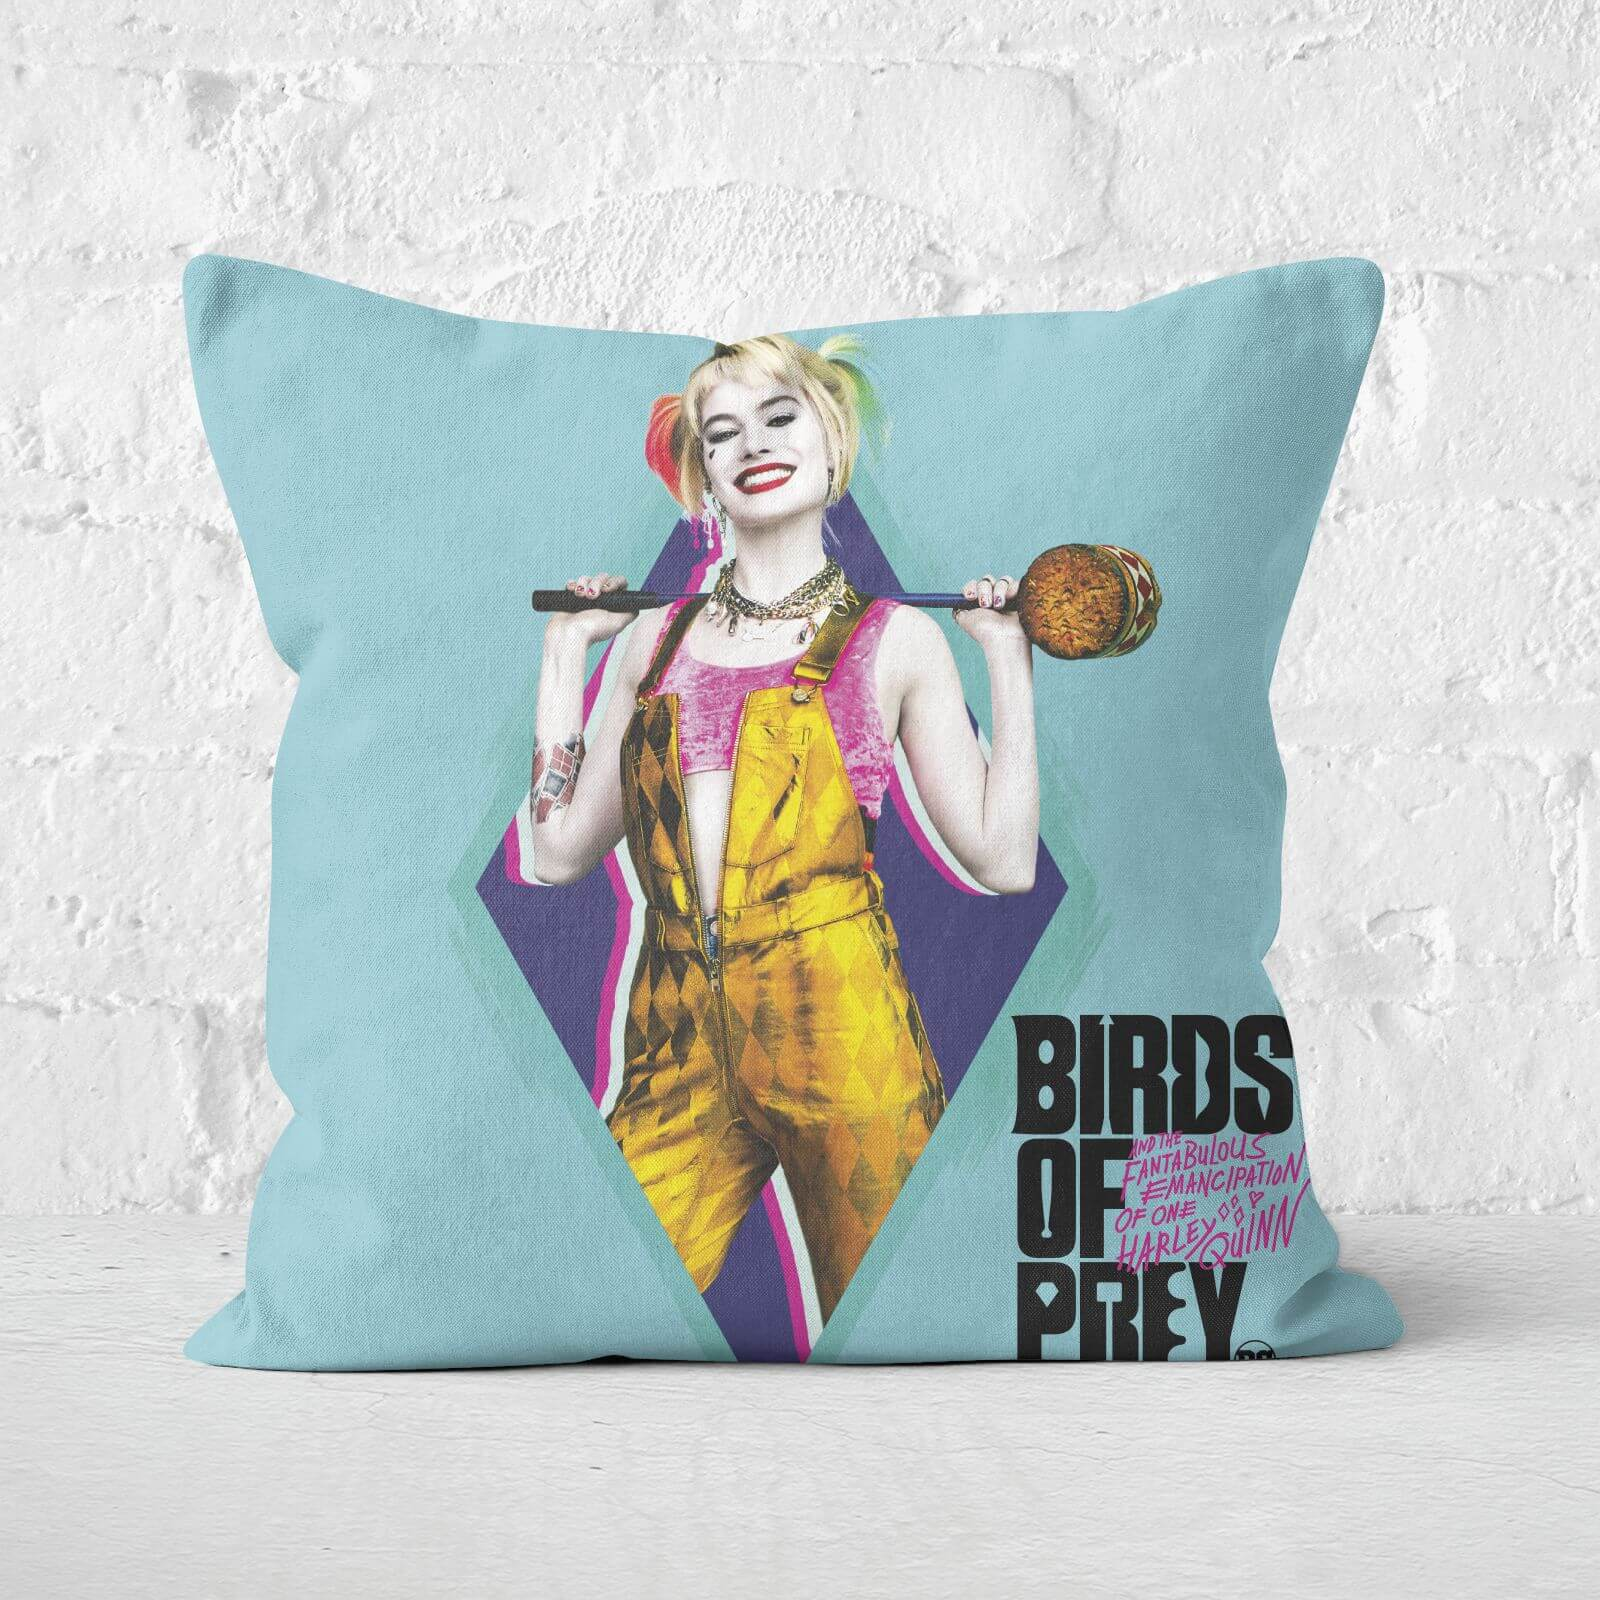 Harley Quinn Square Cushion 40x40cm Eco Friendly